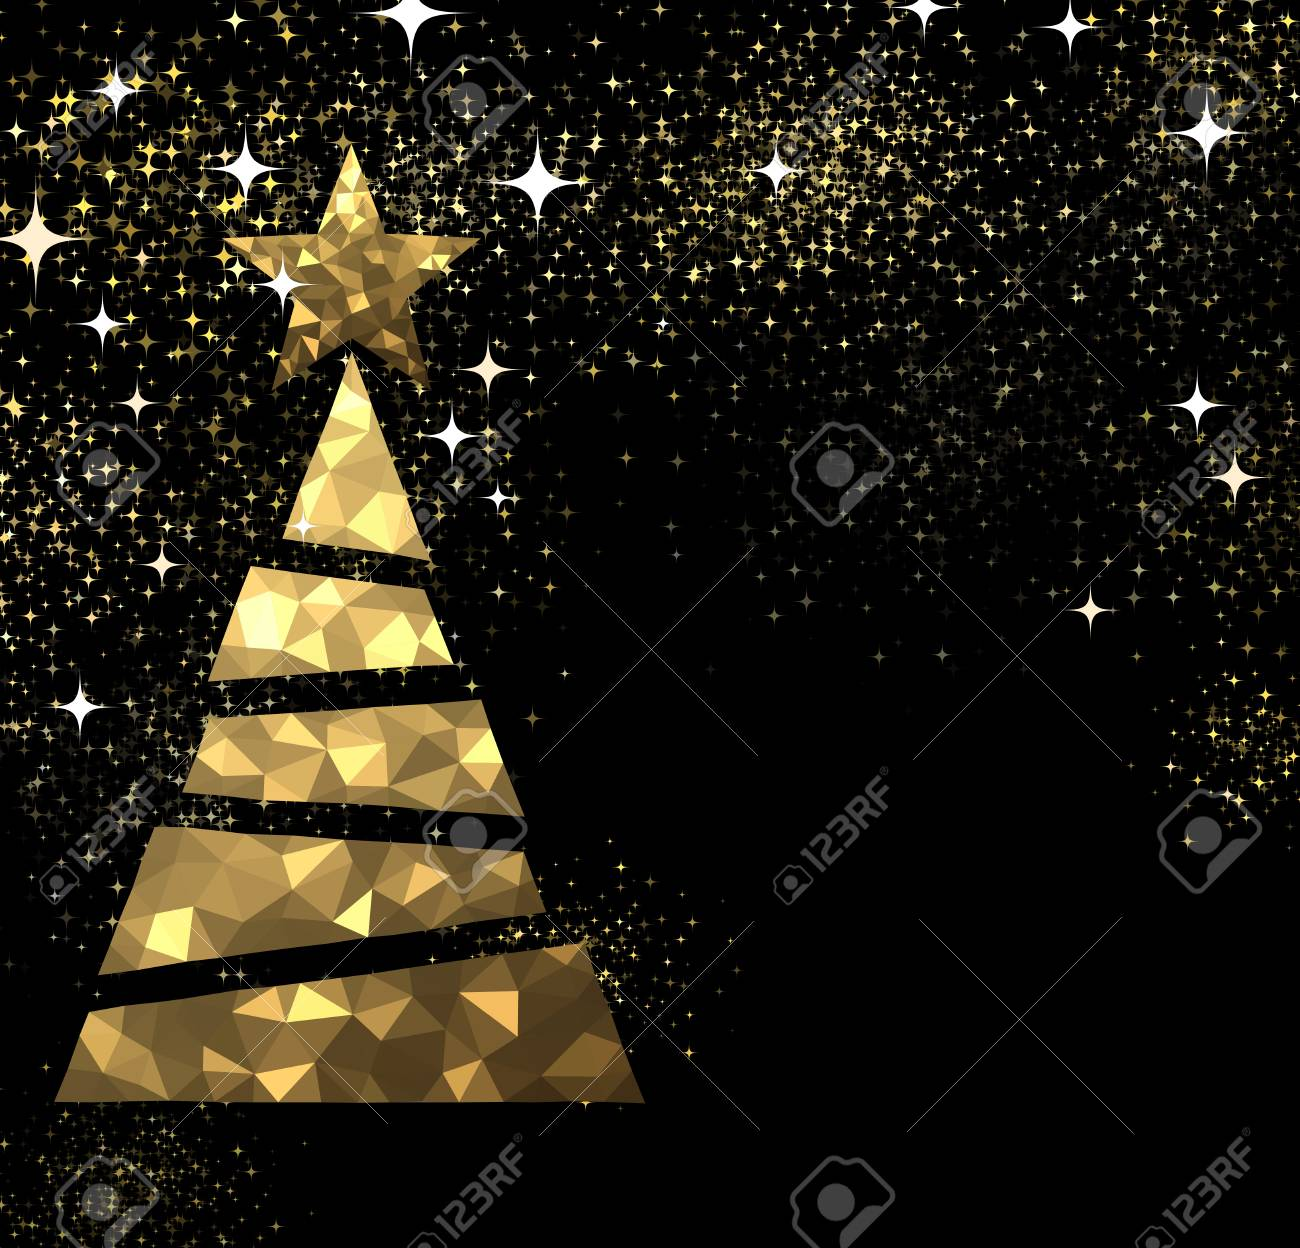 New Year Black Background With Golden Christmas Tree Vector Illustration Stock